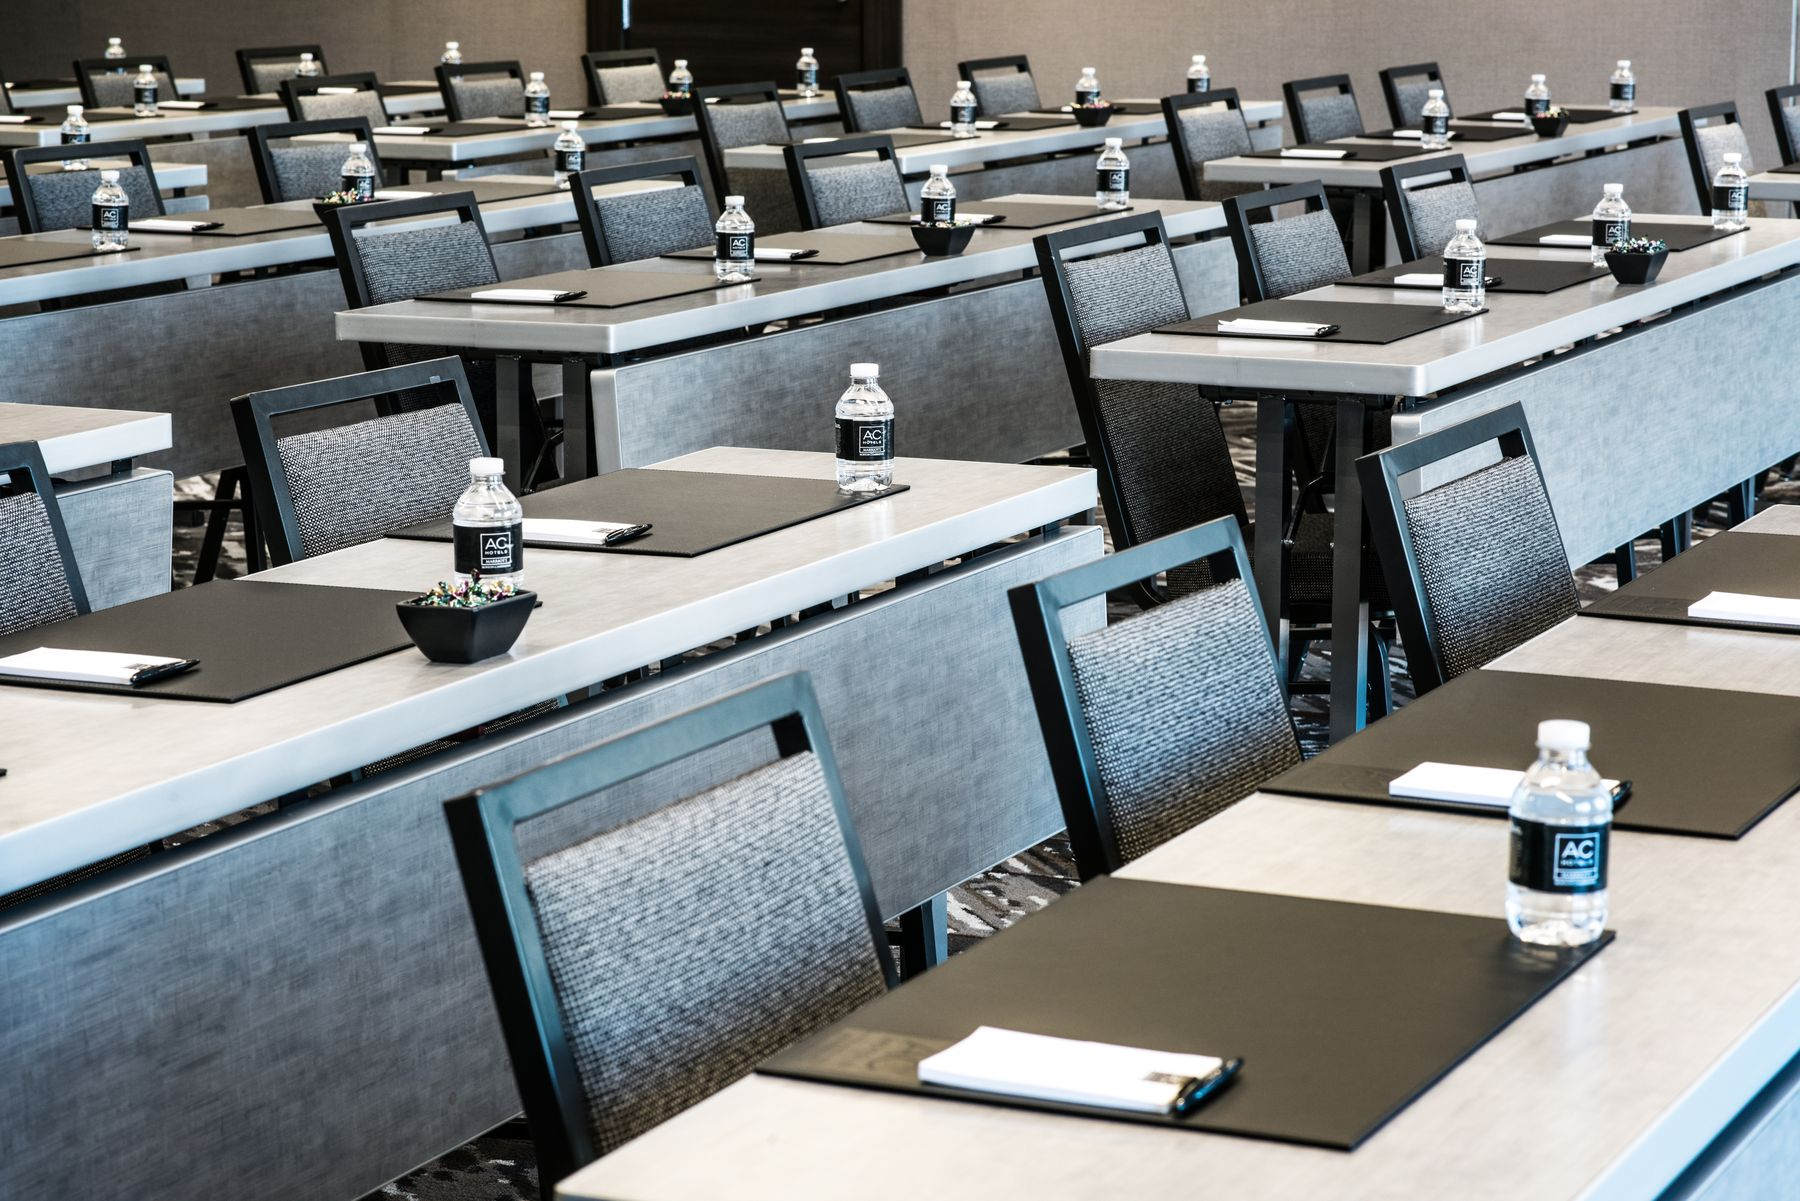 Meeting space set classroom style